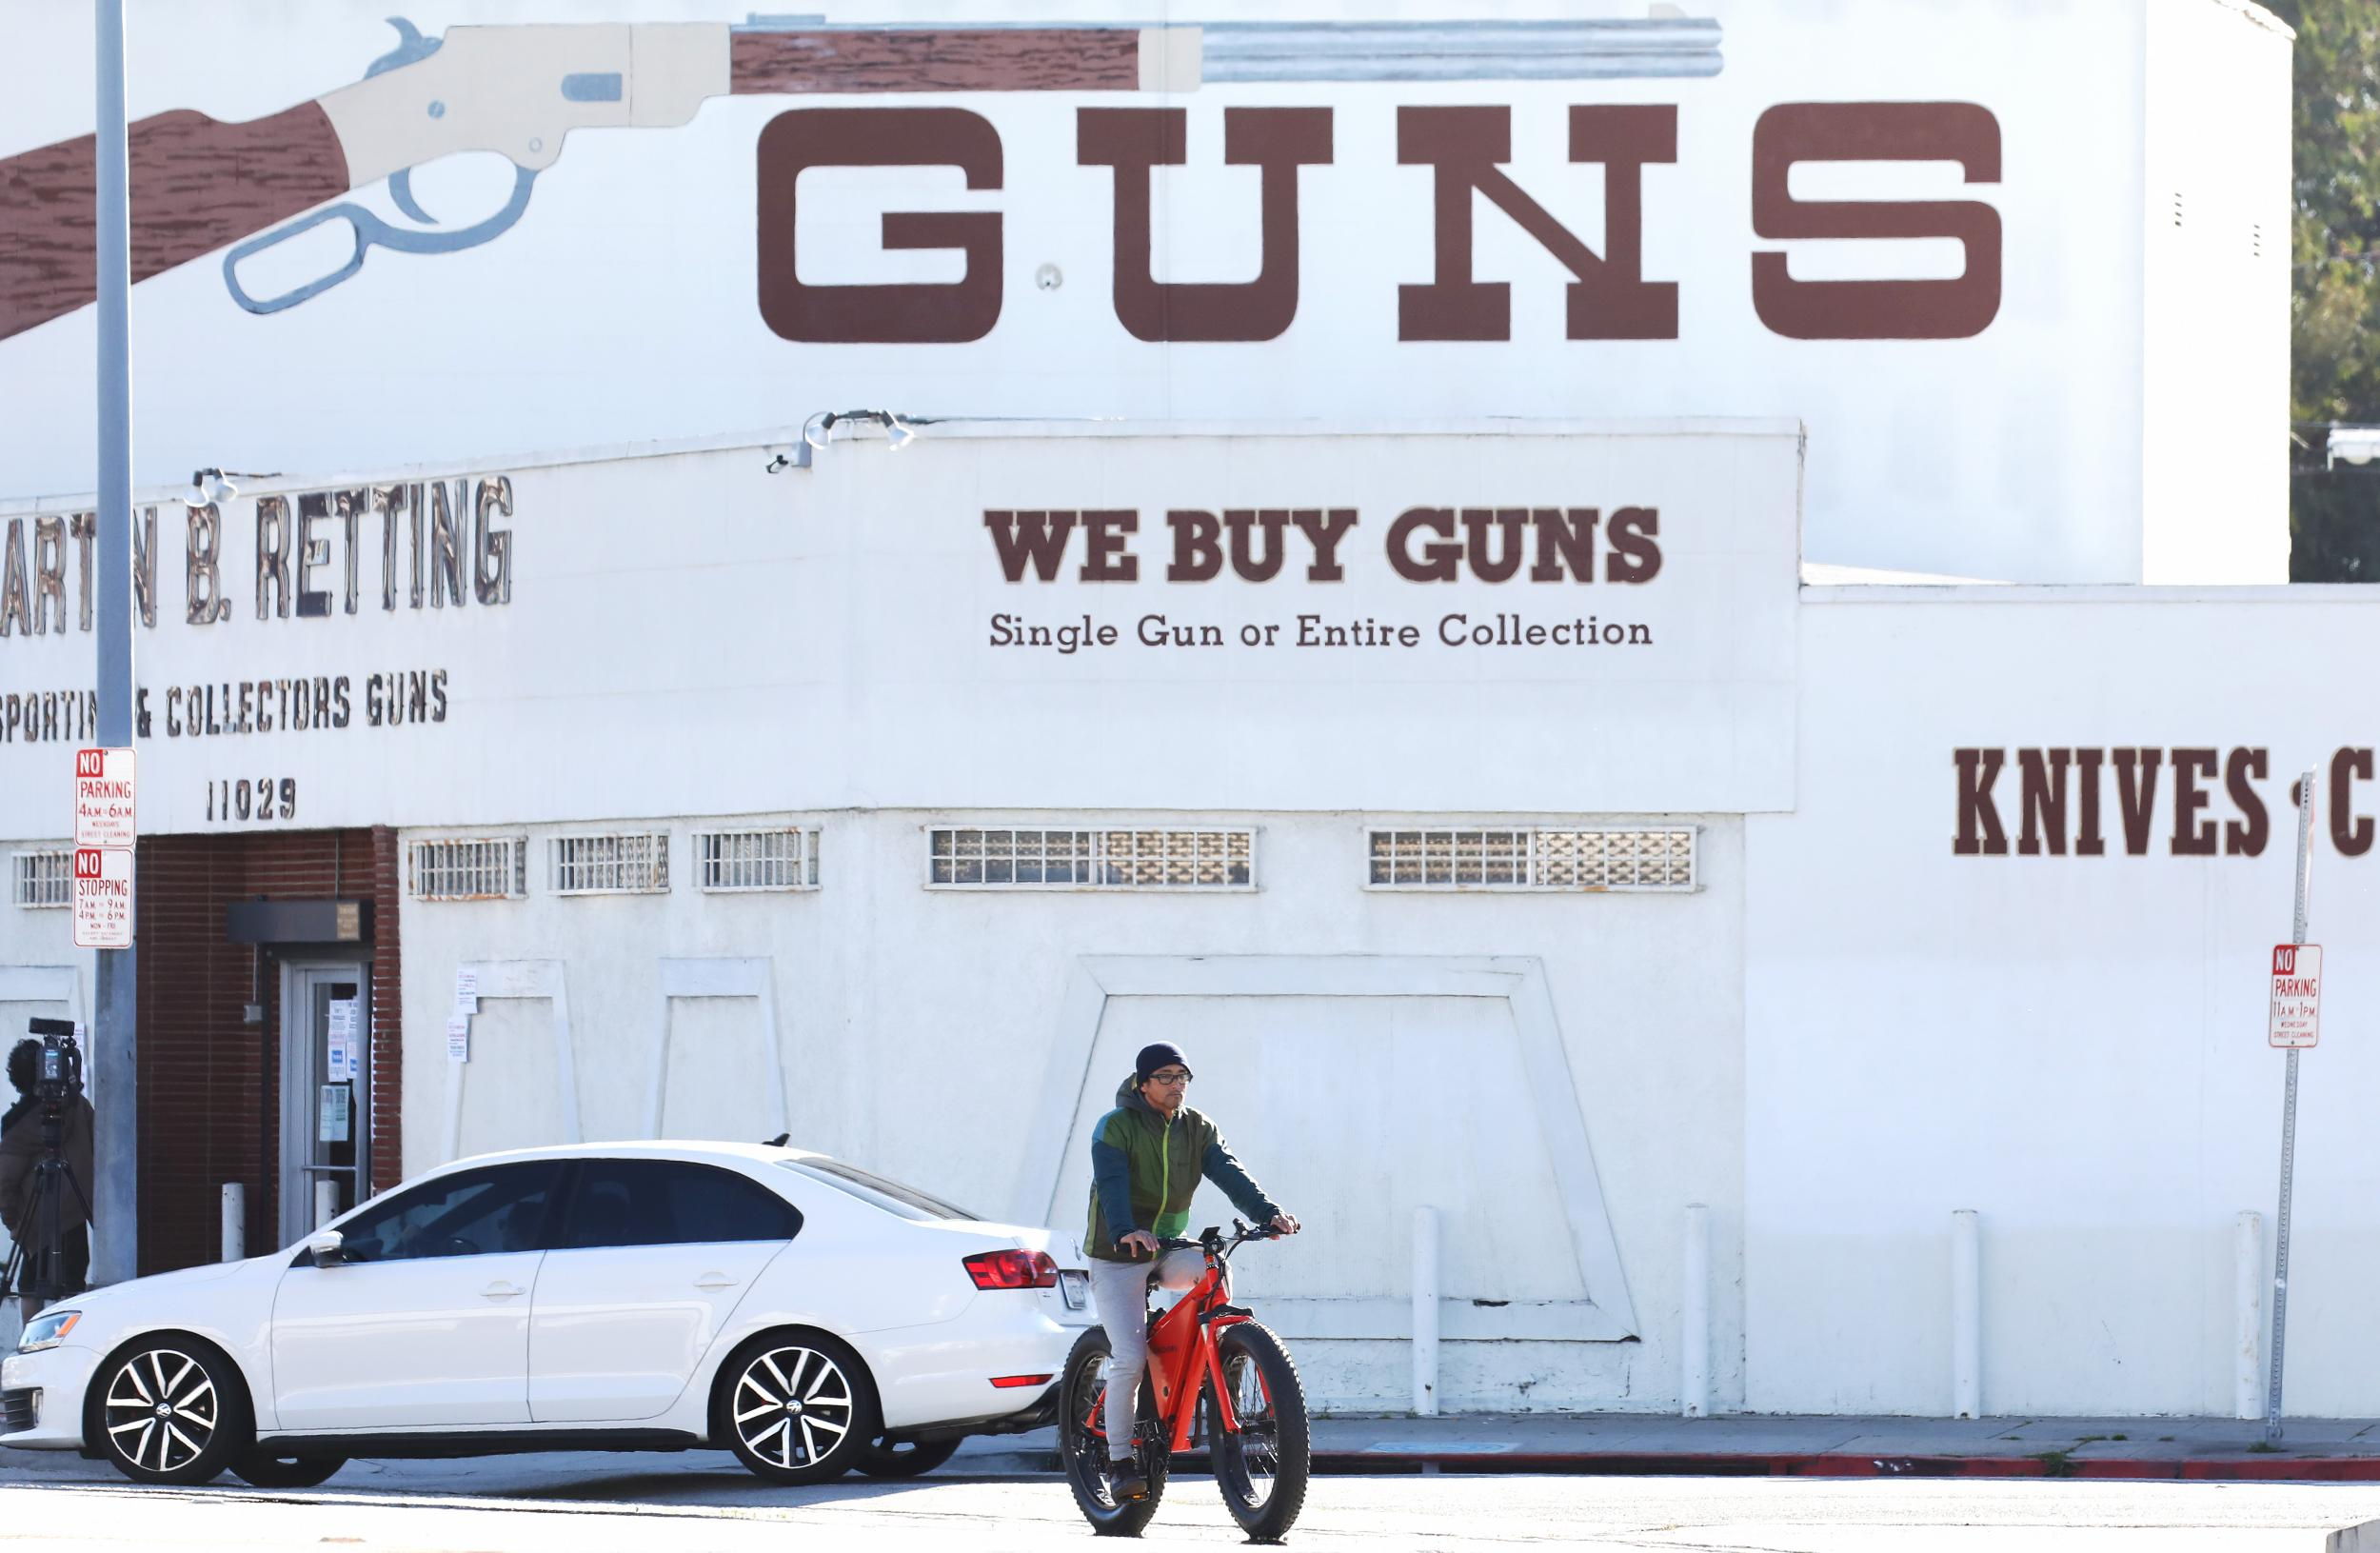 First-time gun owners at risk of suicide, new study confirms